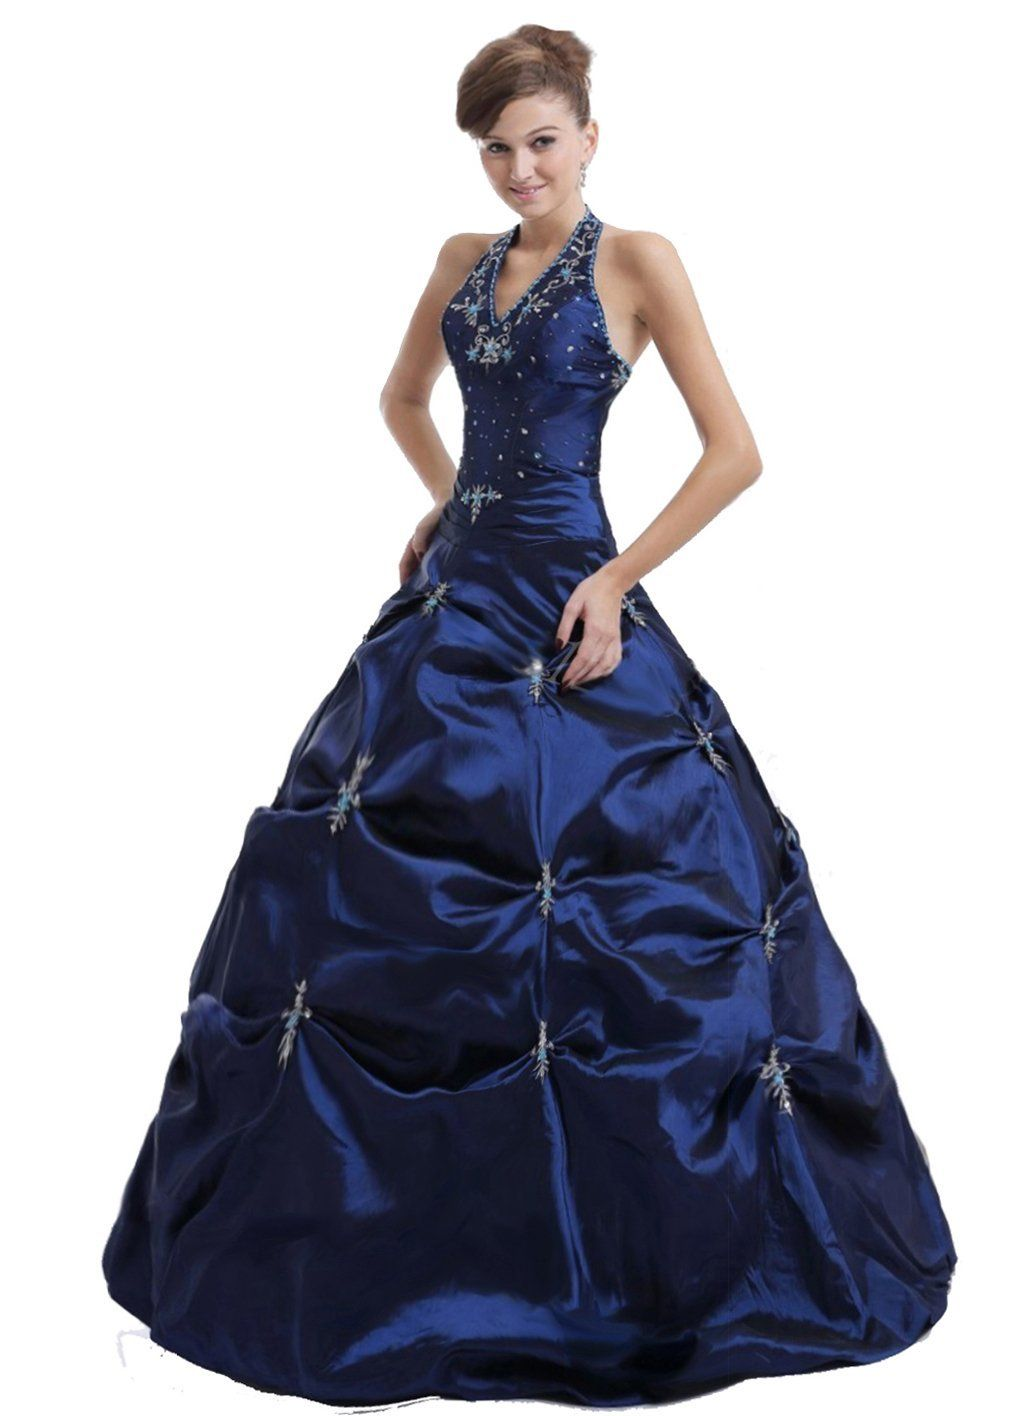 New faironly m navy halter formal prom dress clothes i like